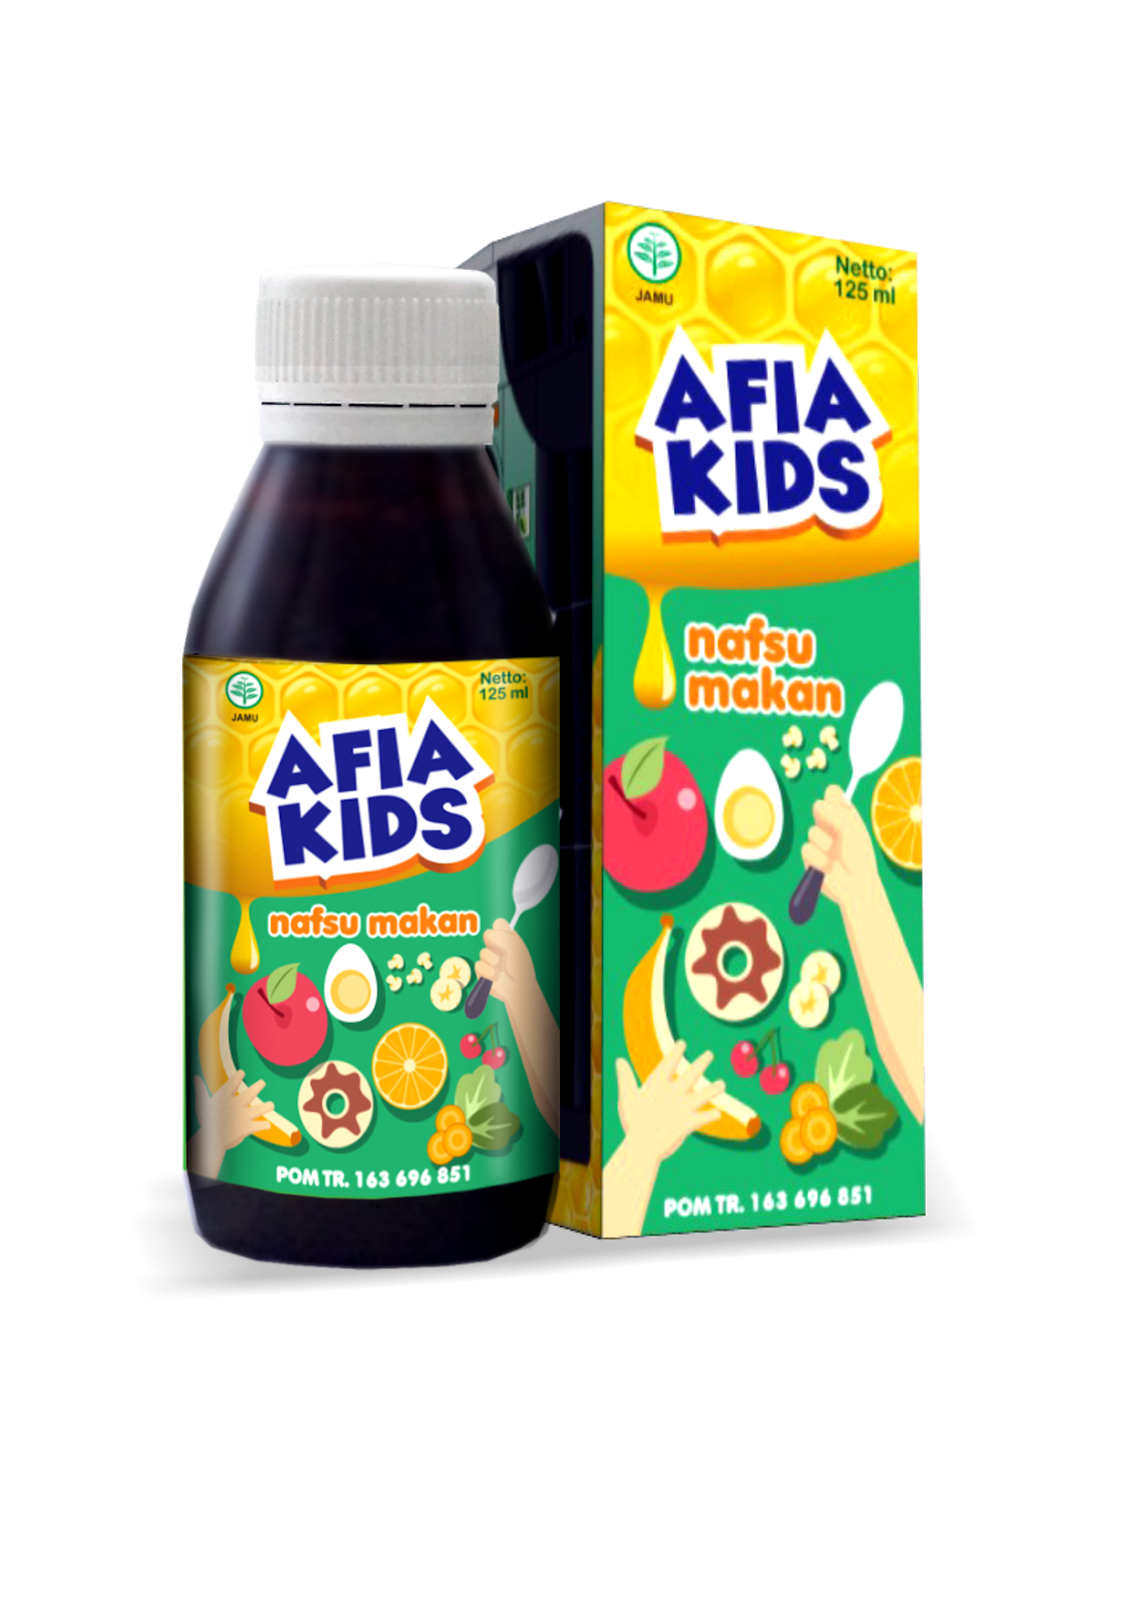 AFIA KIDS[HERBAL NAFSU MAKAN]